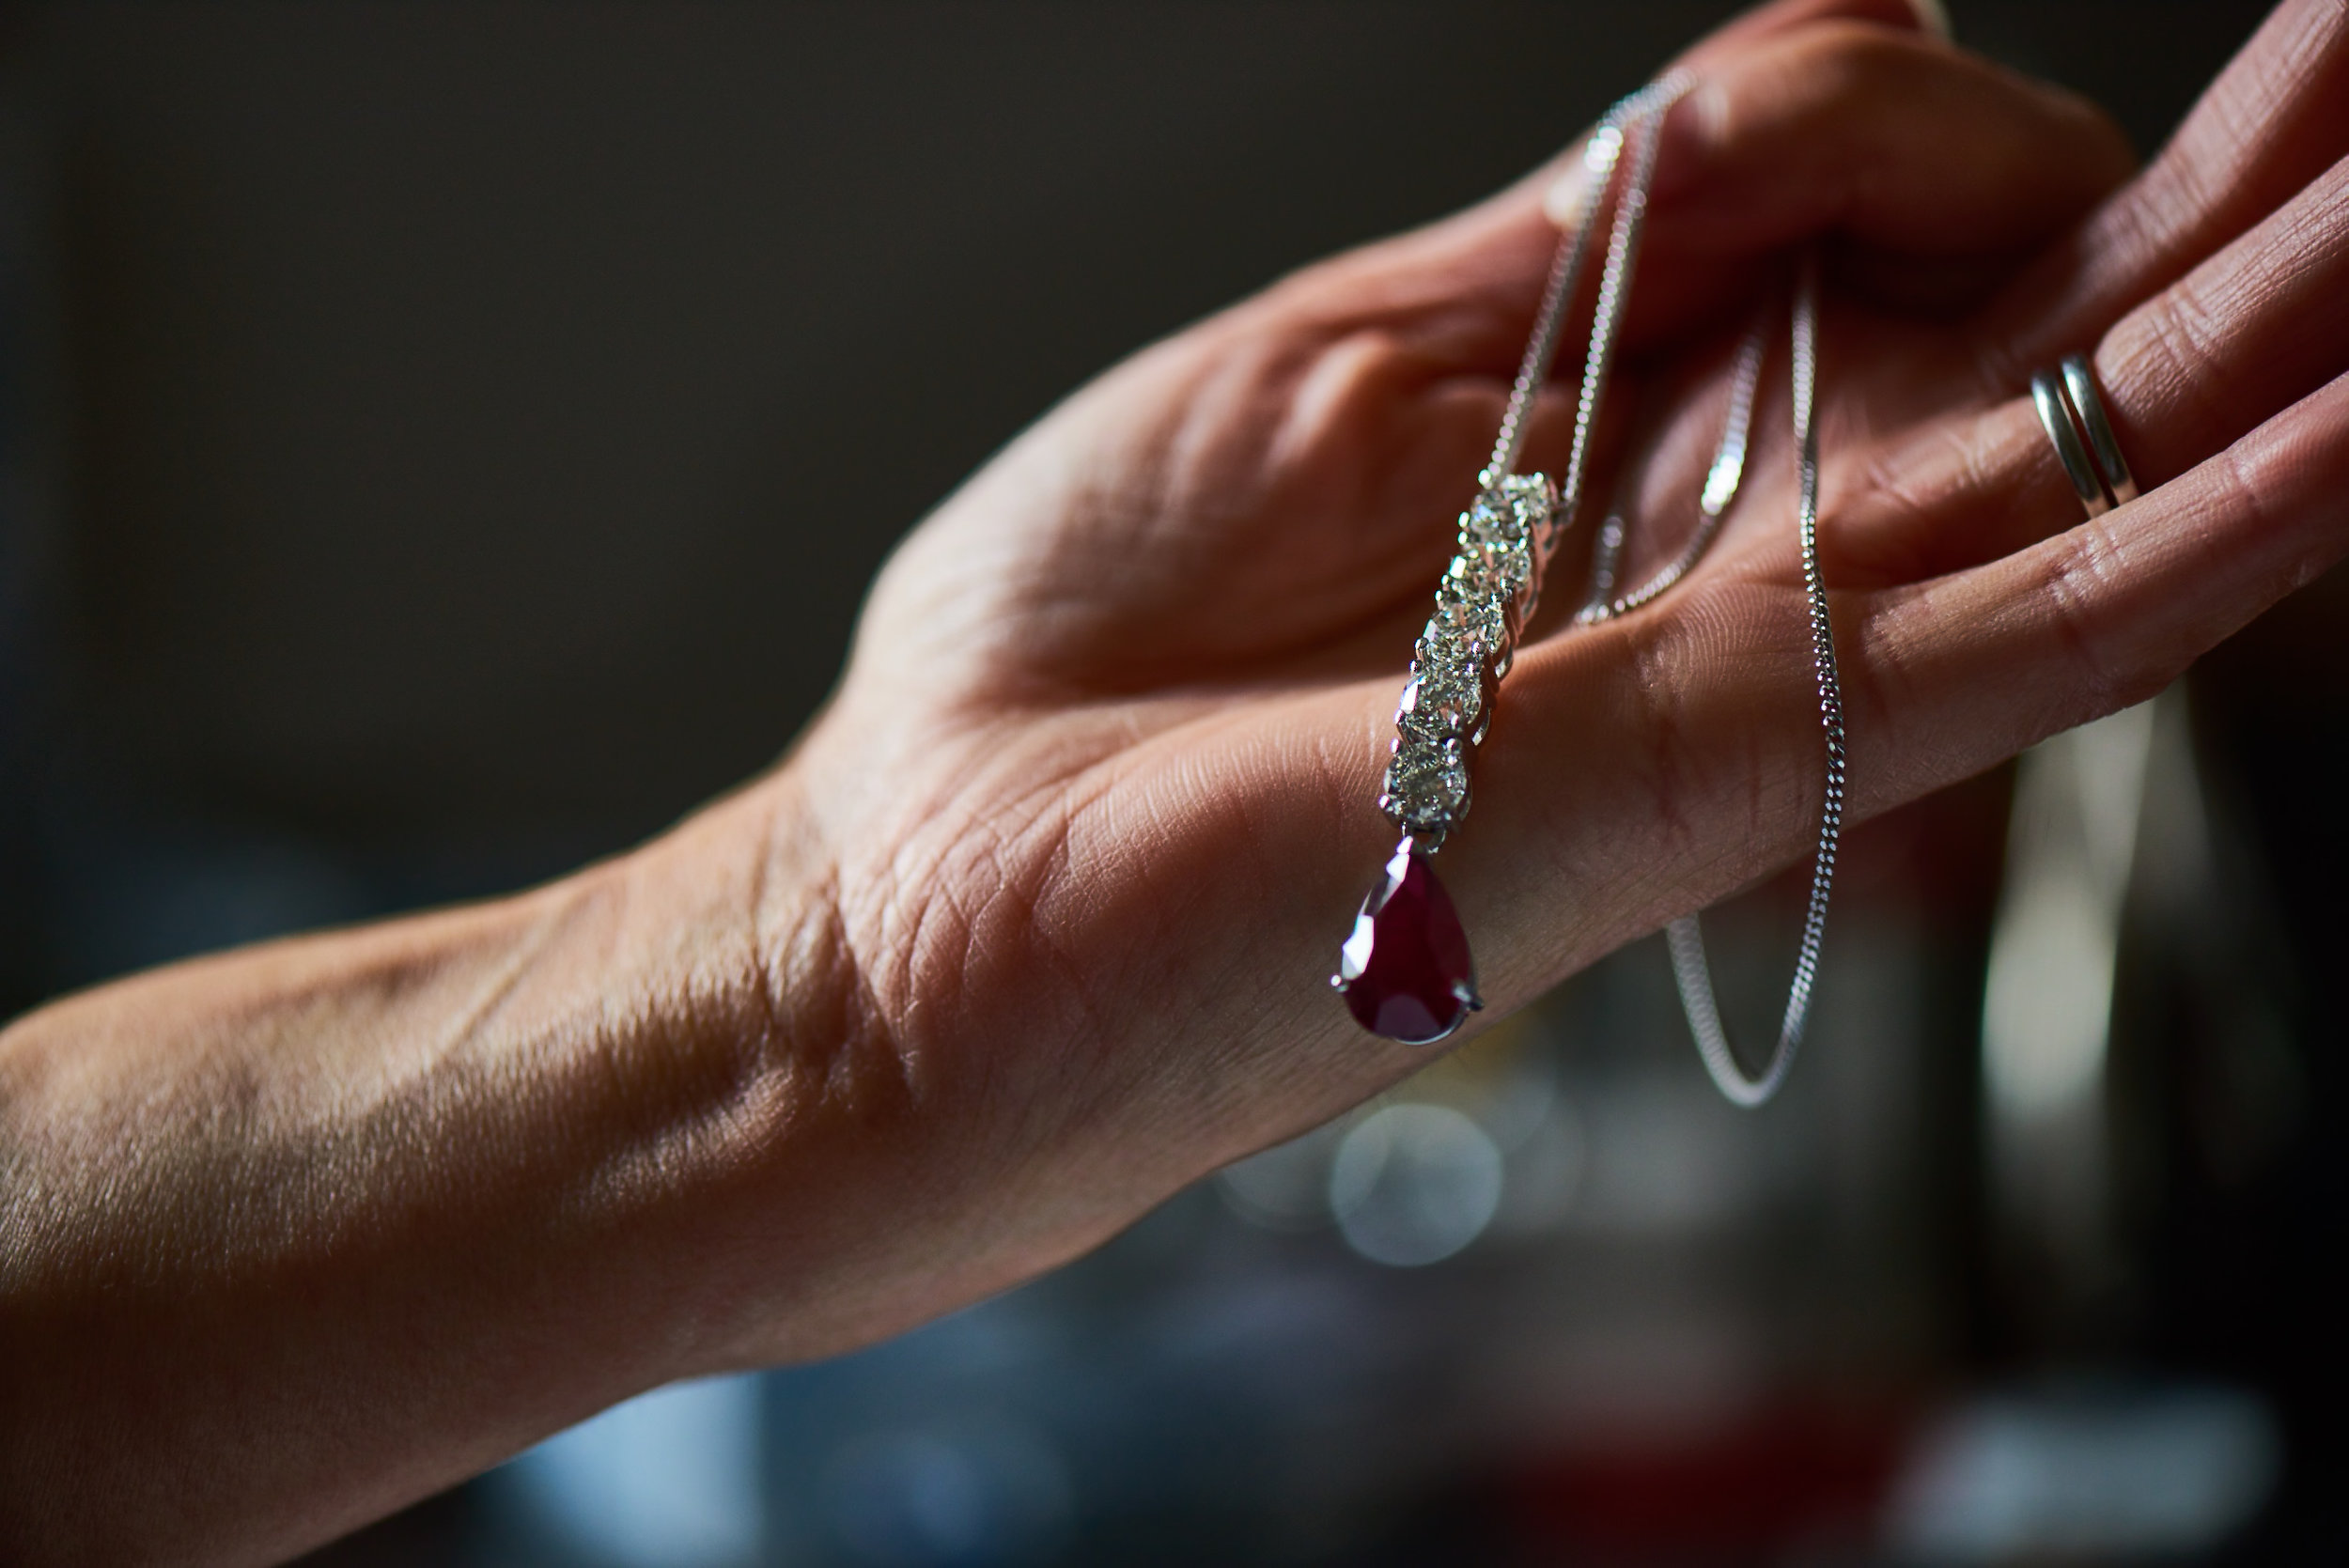 Jewellery valuations - what to expect